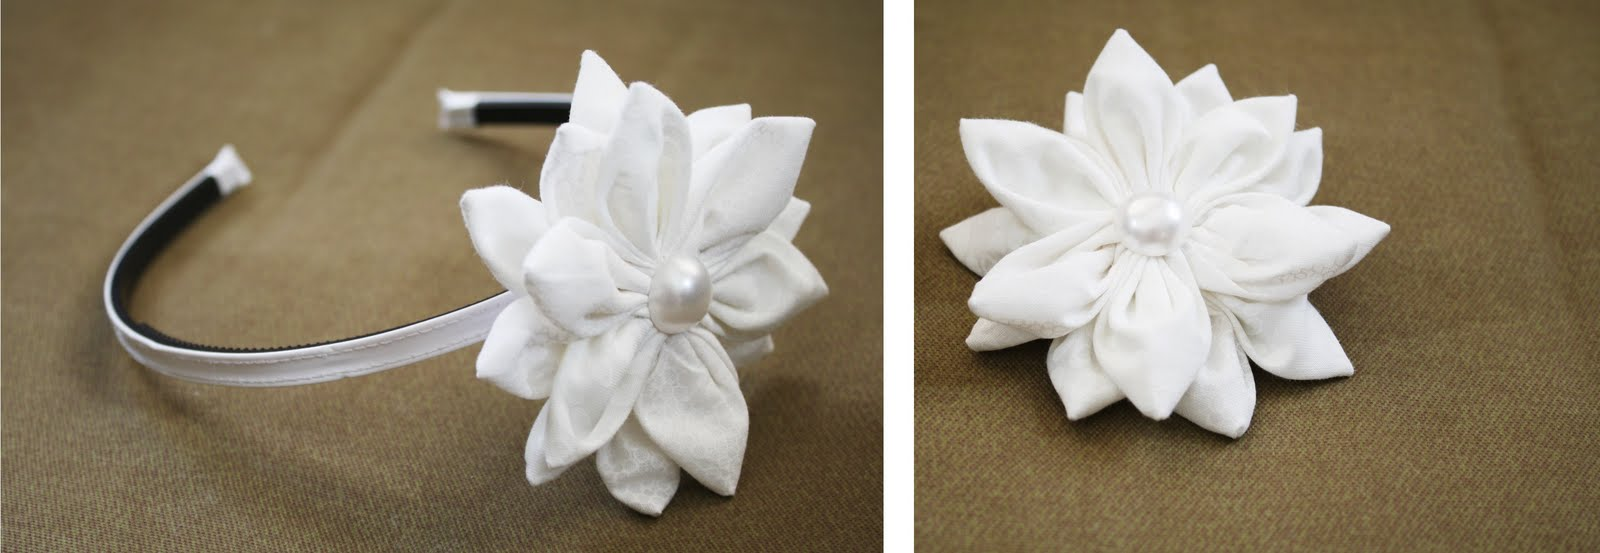 Bayberry Creek Crafter Fabric Flower Tutorial